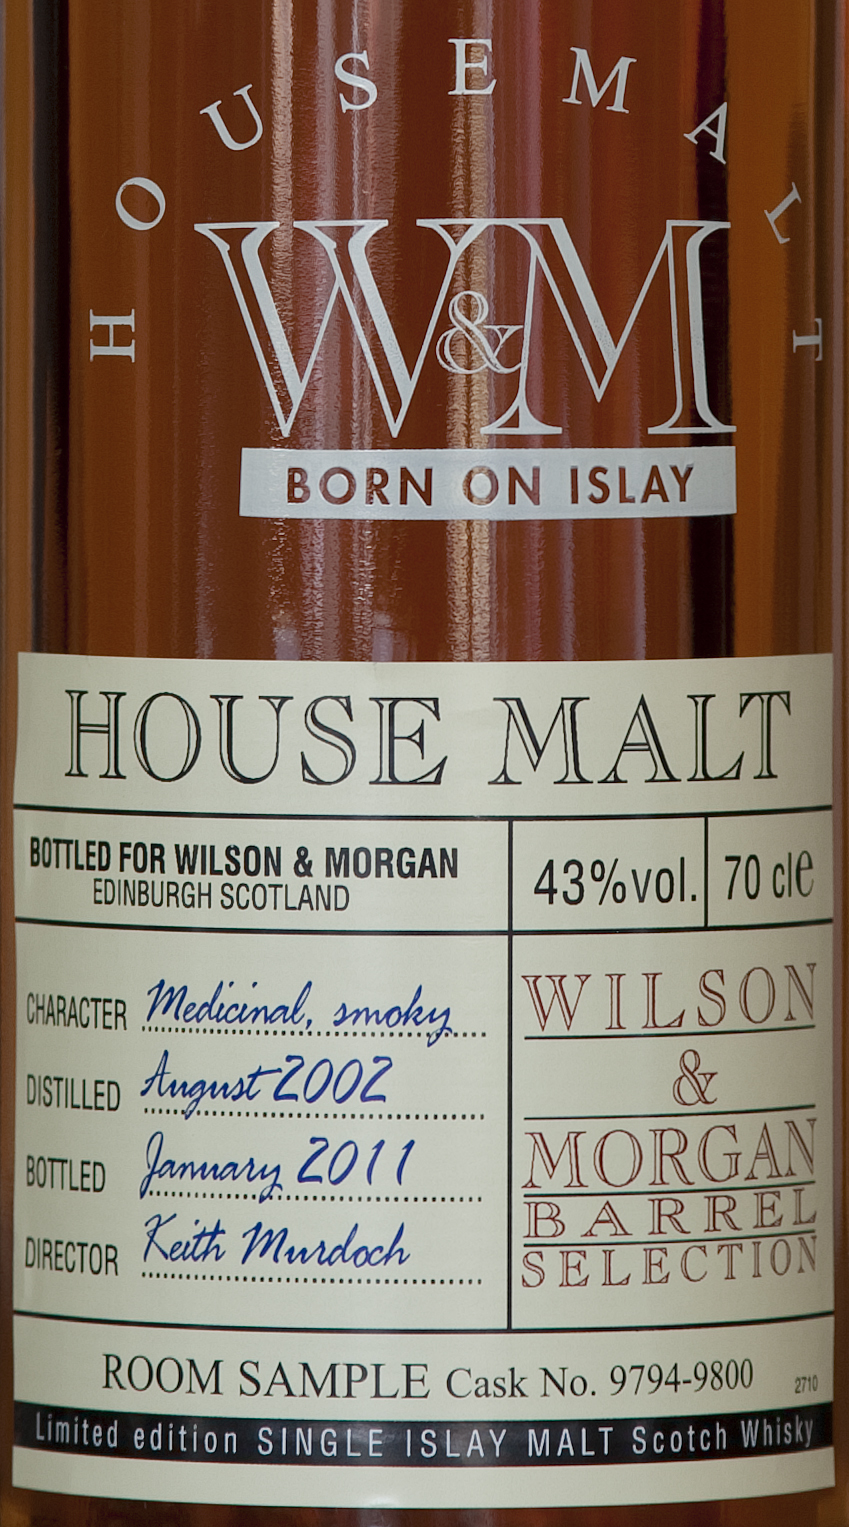 Billede: wm born on islay - label.jpg